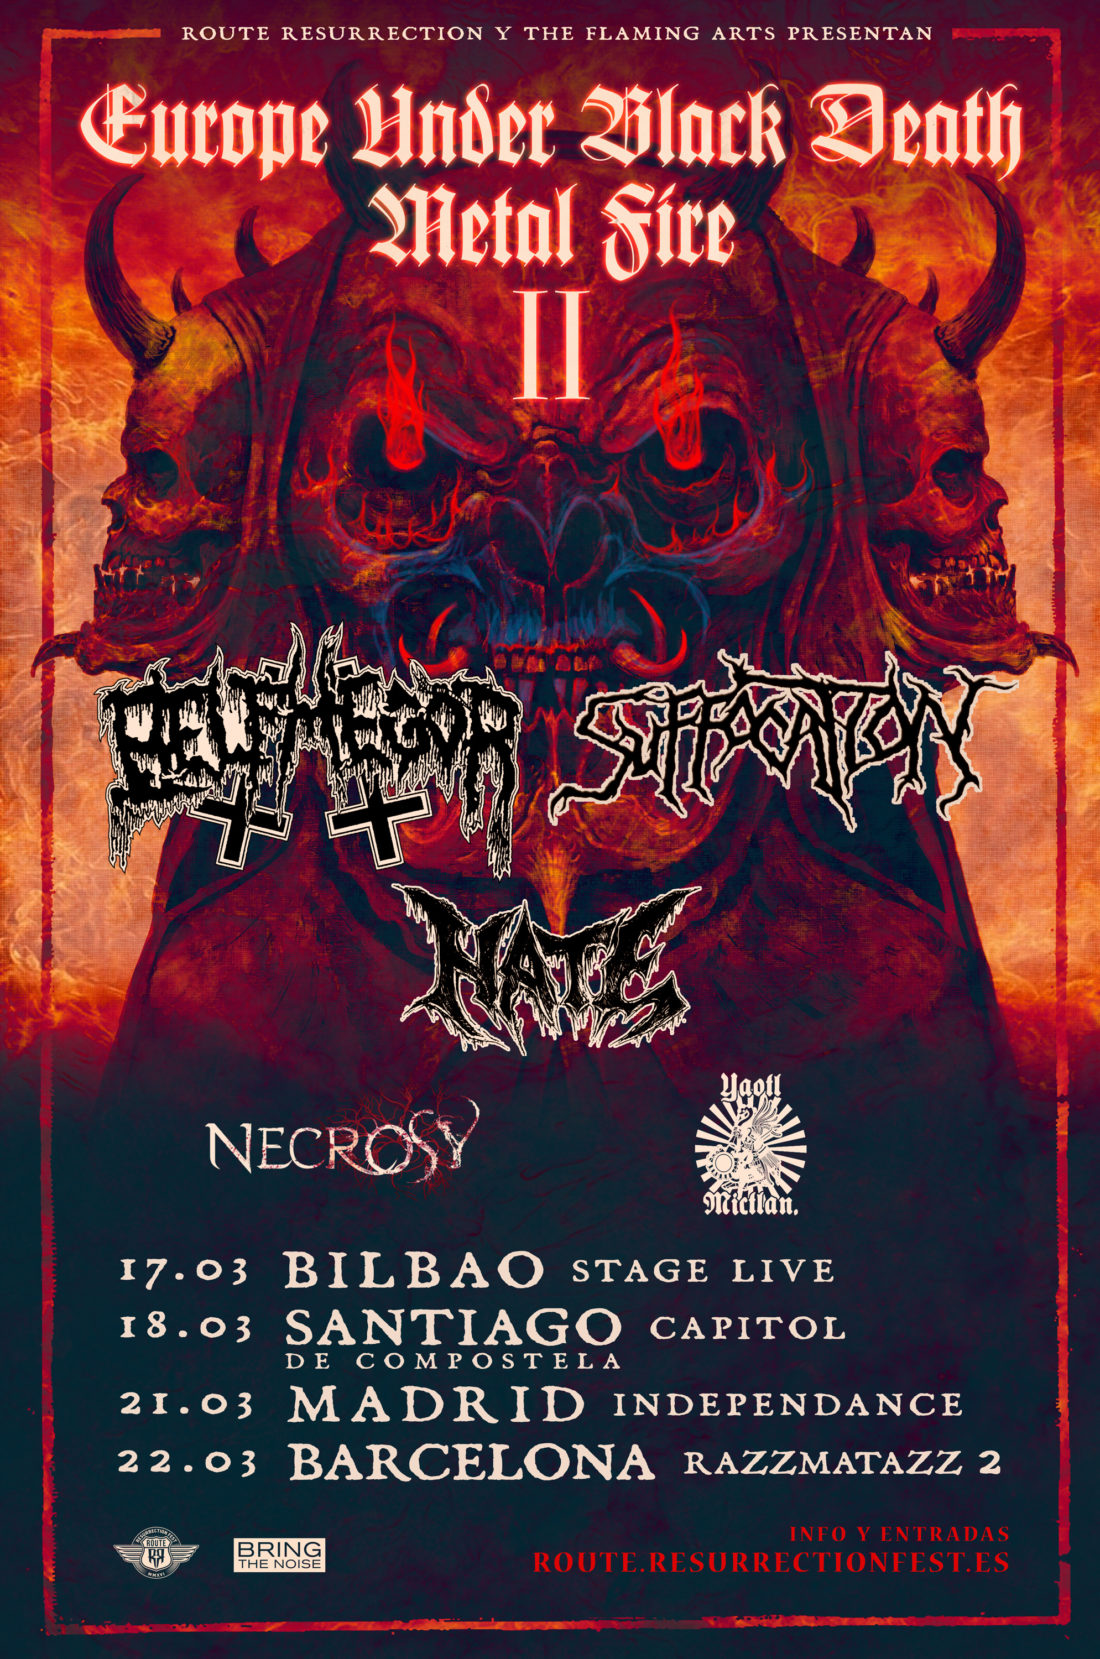 Suffocation + Belphegor (Europe Under the Black Death Metal Fire Tour II)